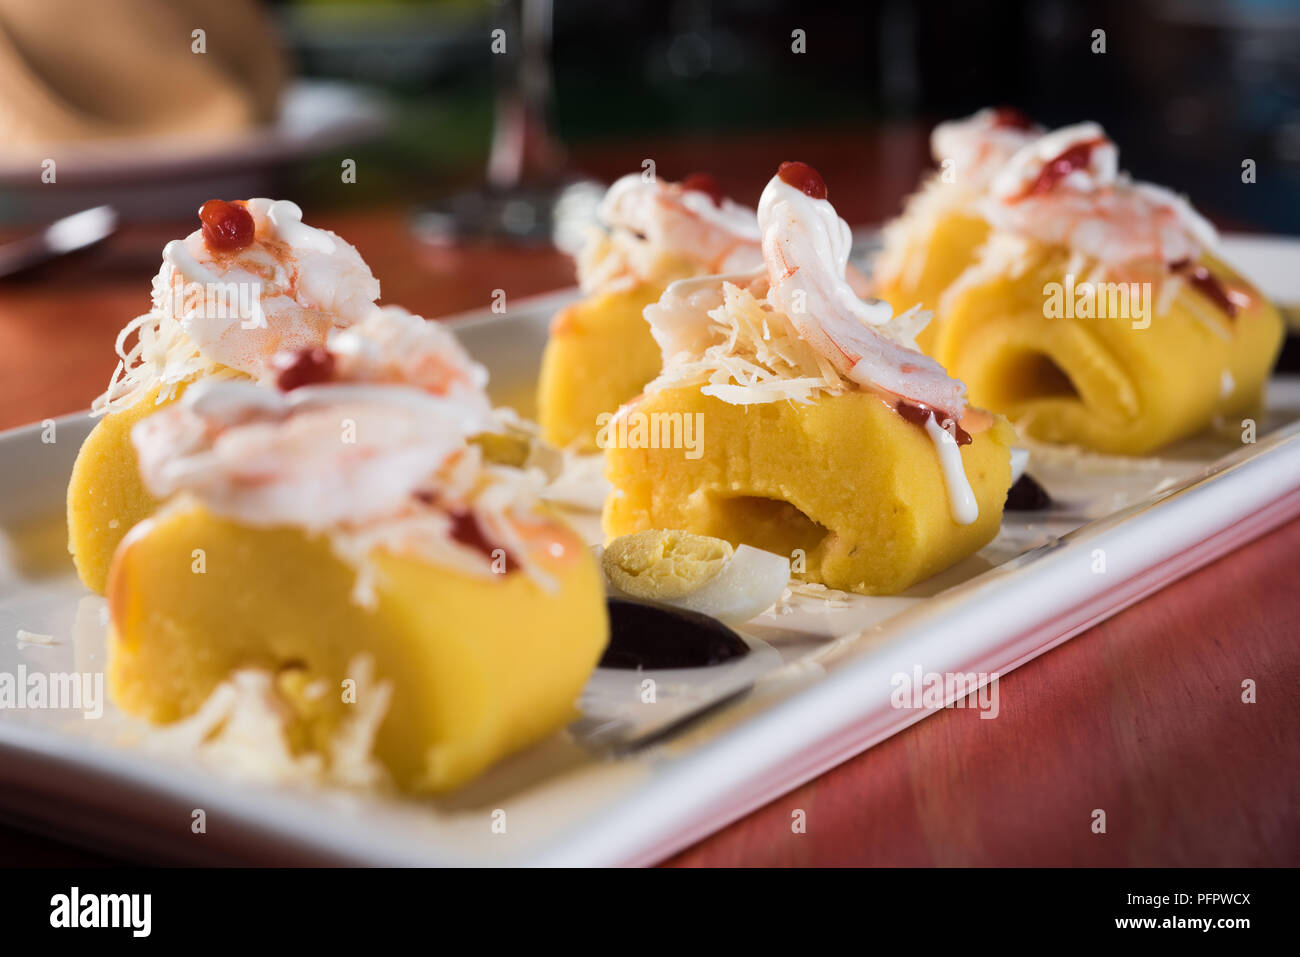 Peruvian Food: Causa Rellena, A smashed popatoes filled with crab meal. - Stock Image